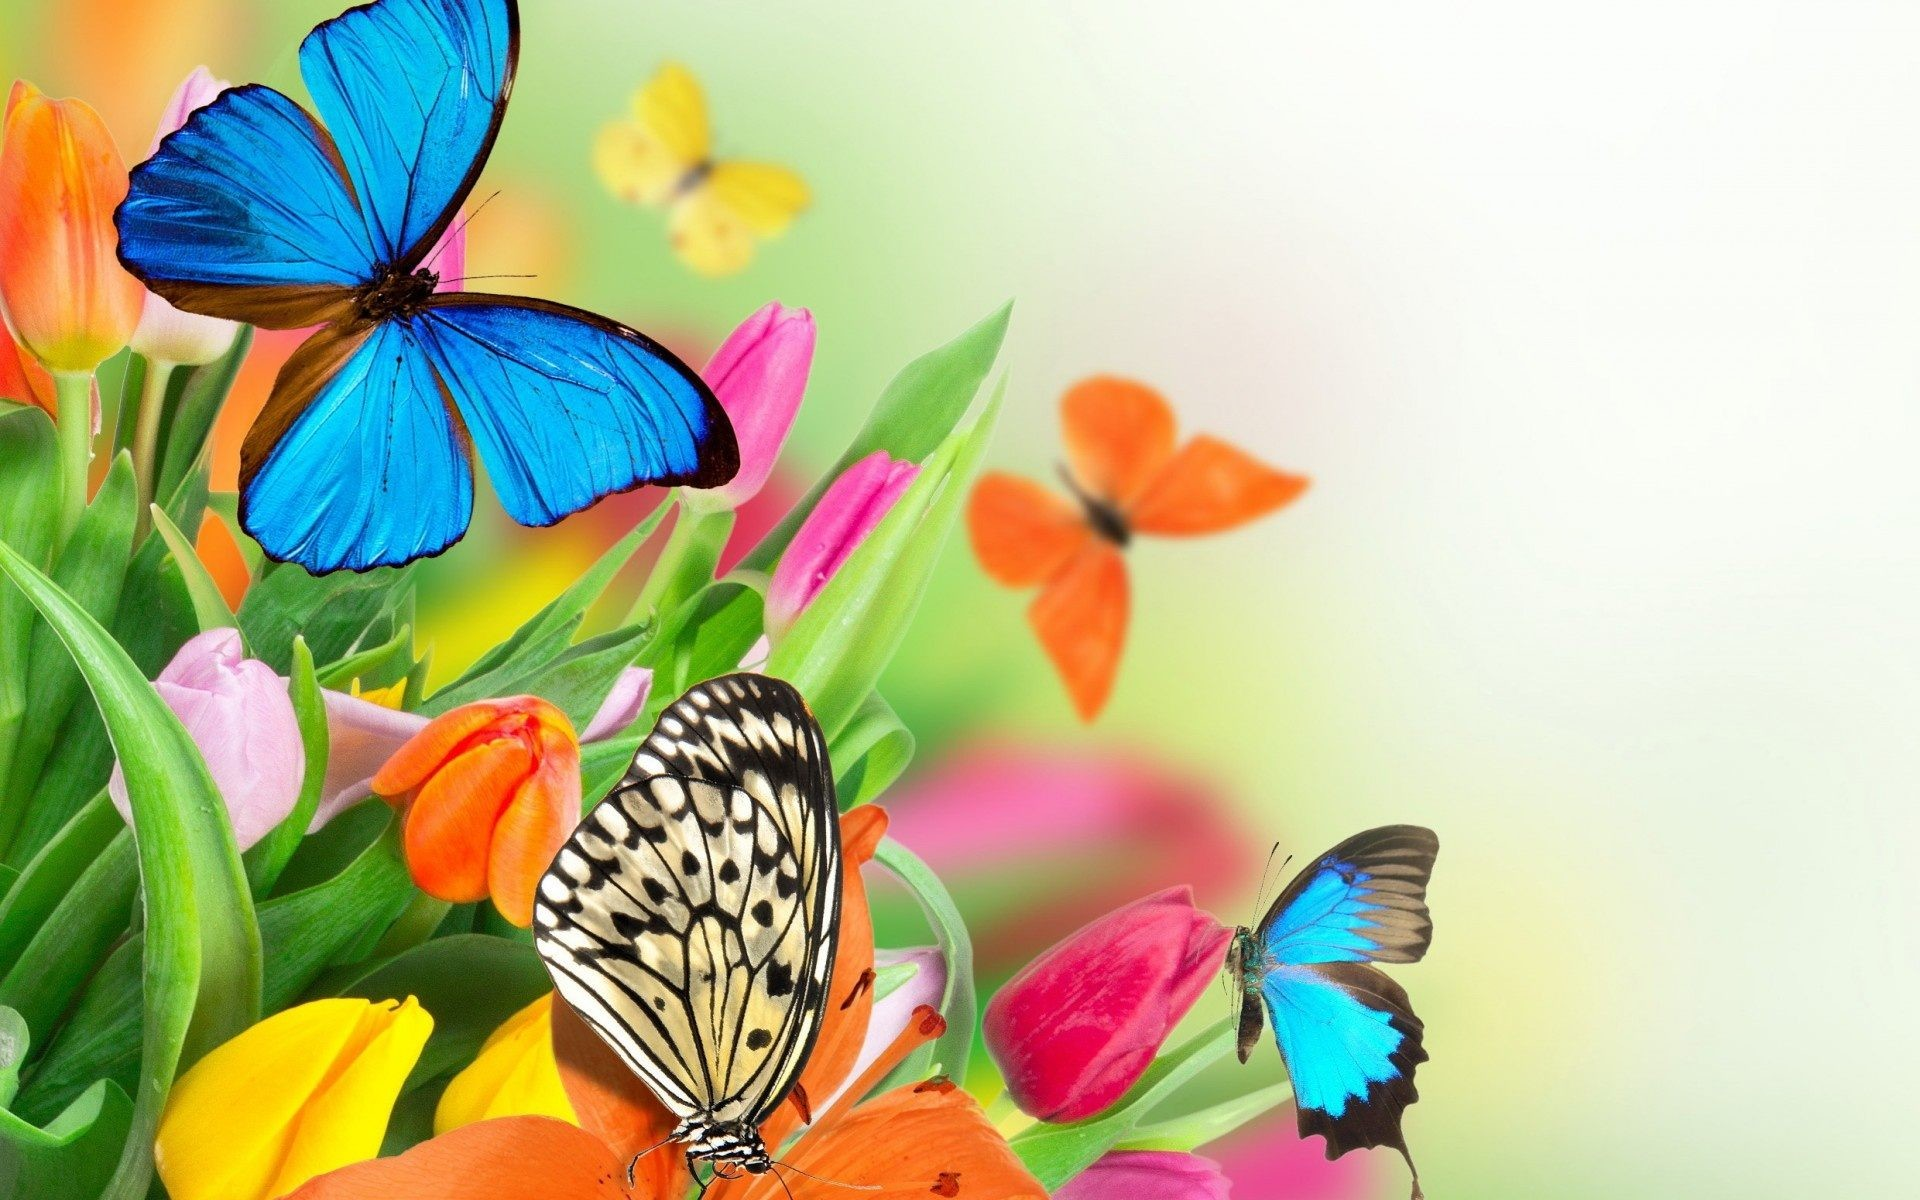 1920x1200 Colorful Butterfly On Flower Wallpaper For Desktop amp Mobile